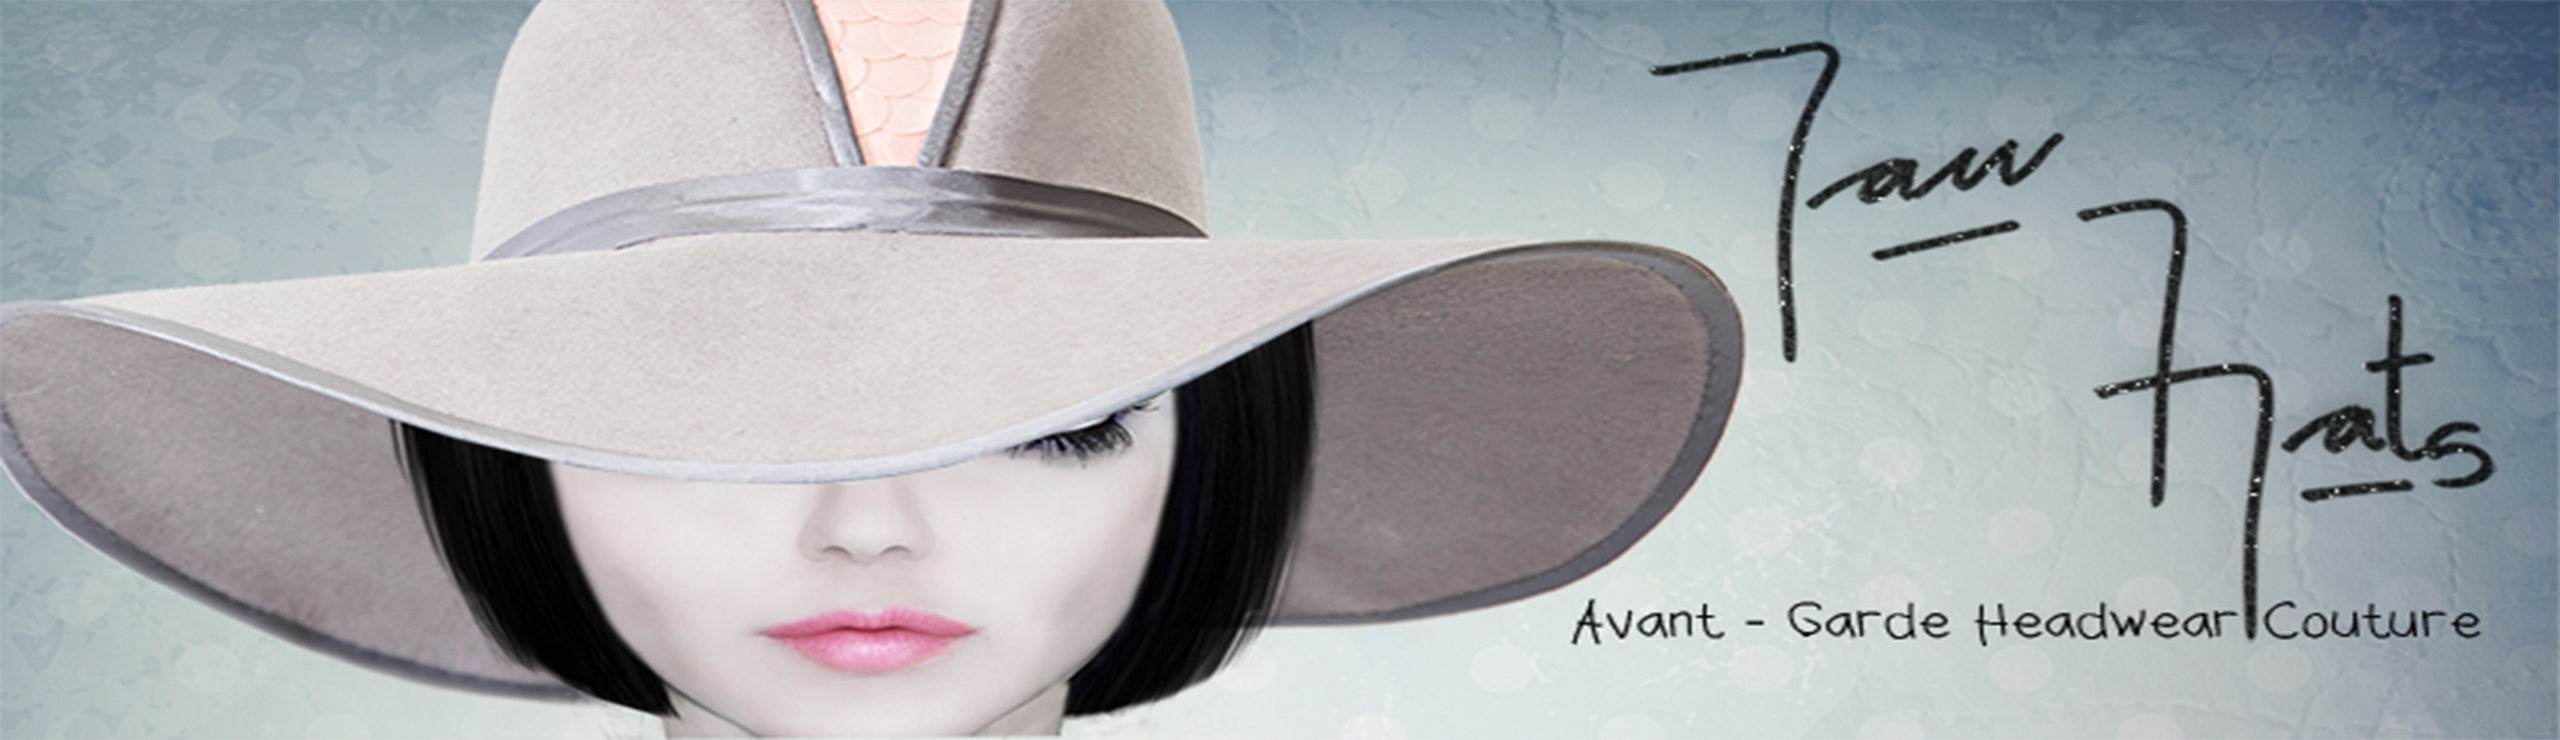 Yan Hats (@yanhats) Cover Image